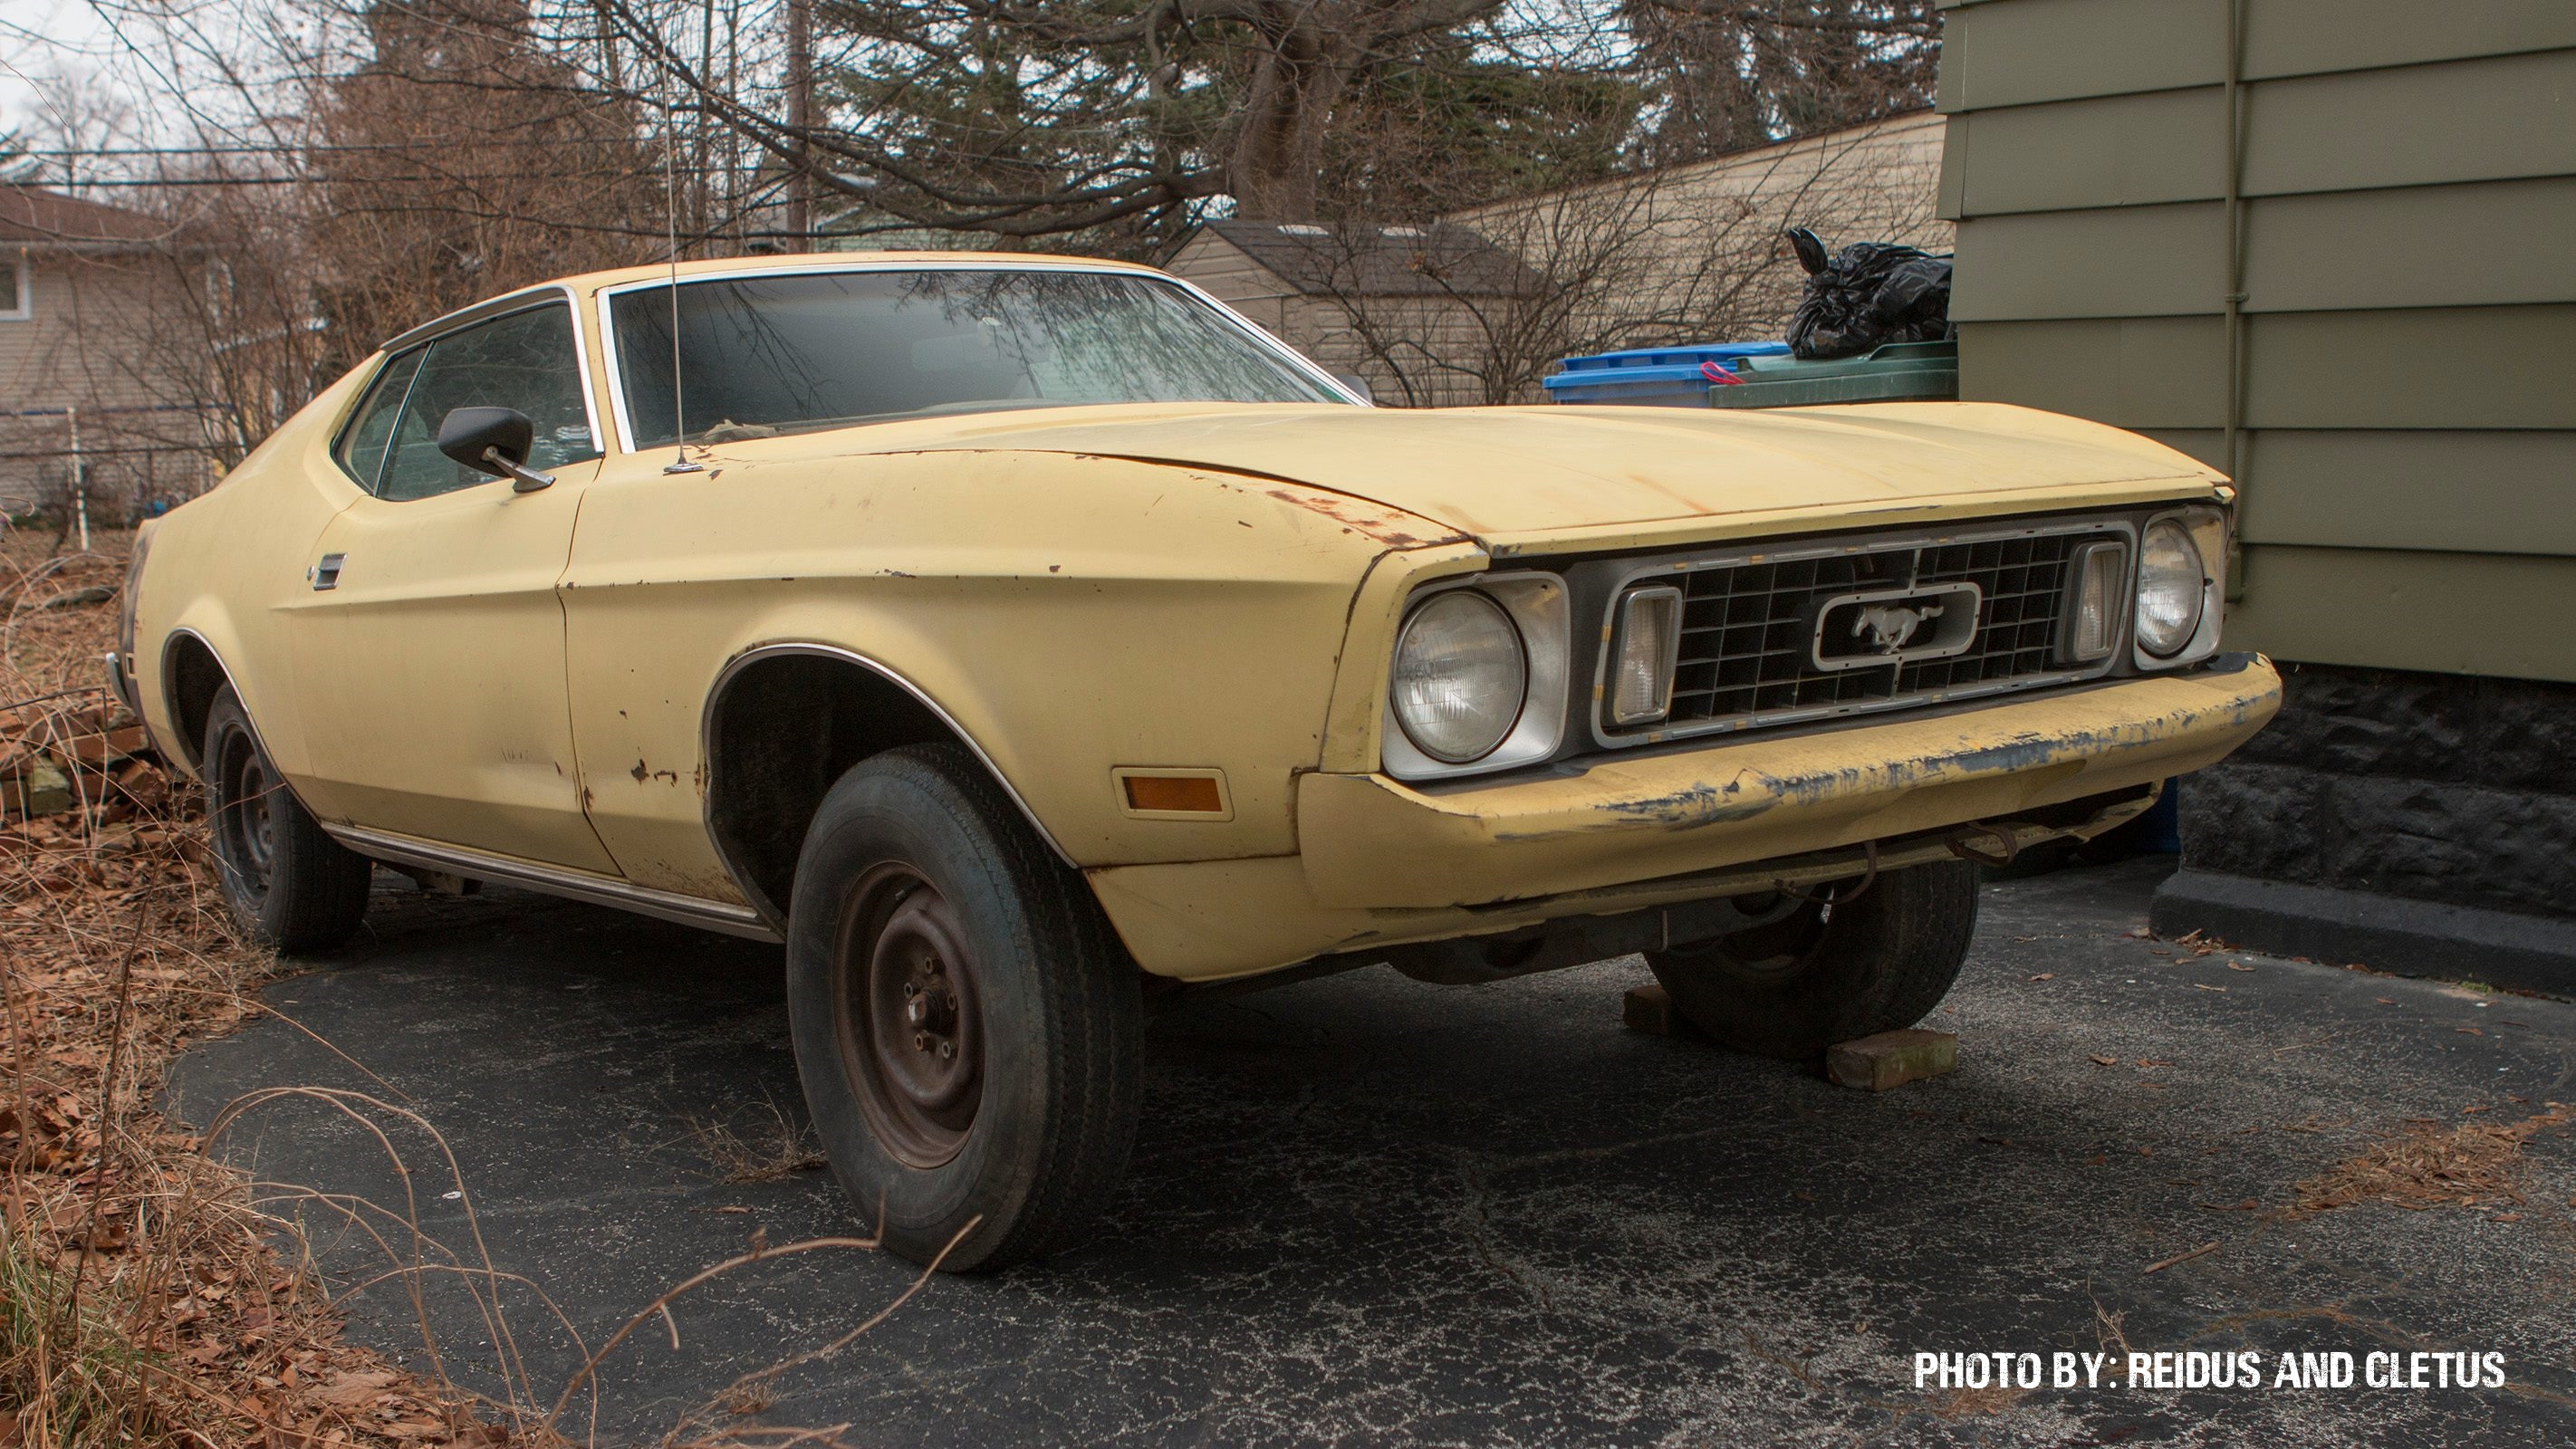 The Mach 12: Check Out How This 1973 Ford Mustang Is Being Turned Into One Man's Vision Of A Sports Car!